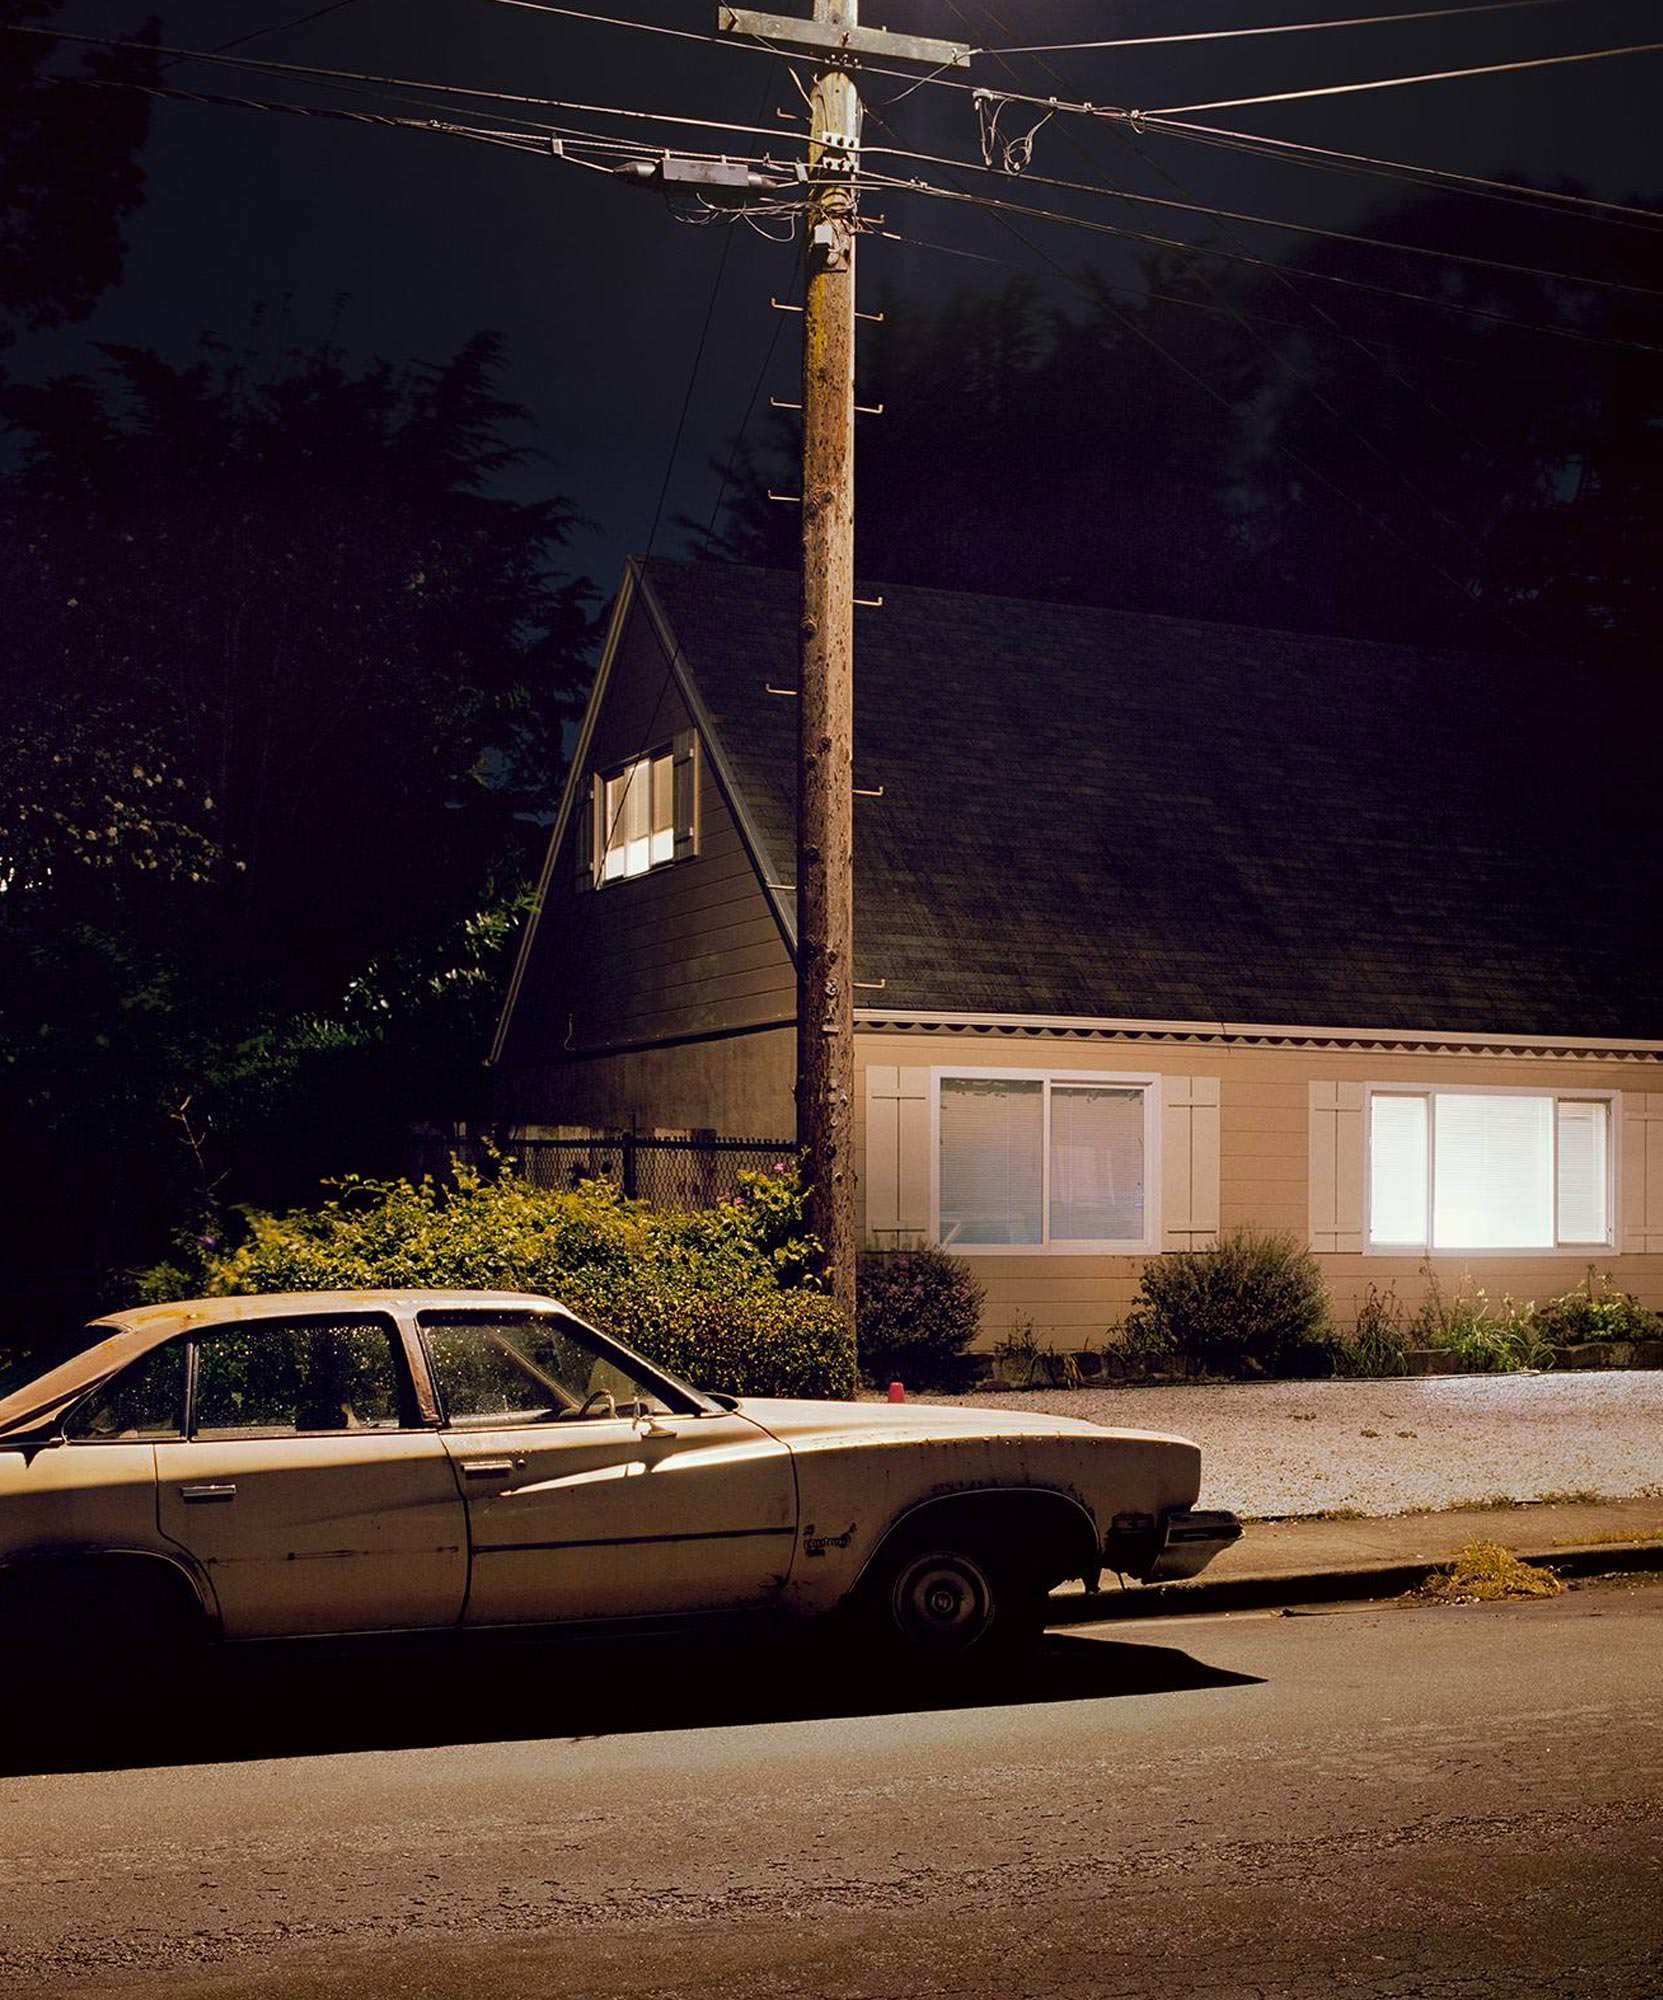 Todd Hido Photographie #2027-A, 1997